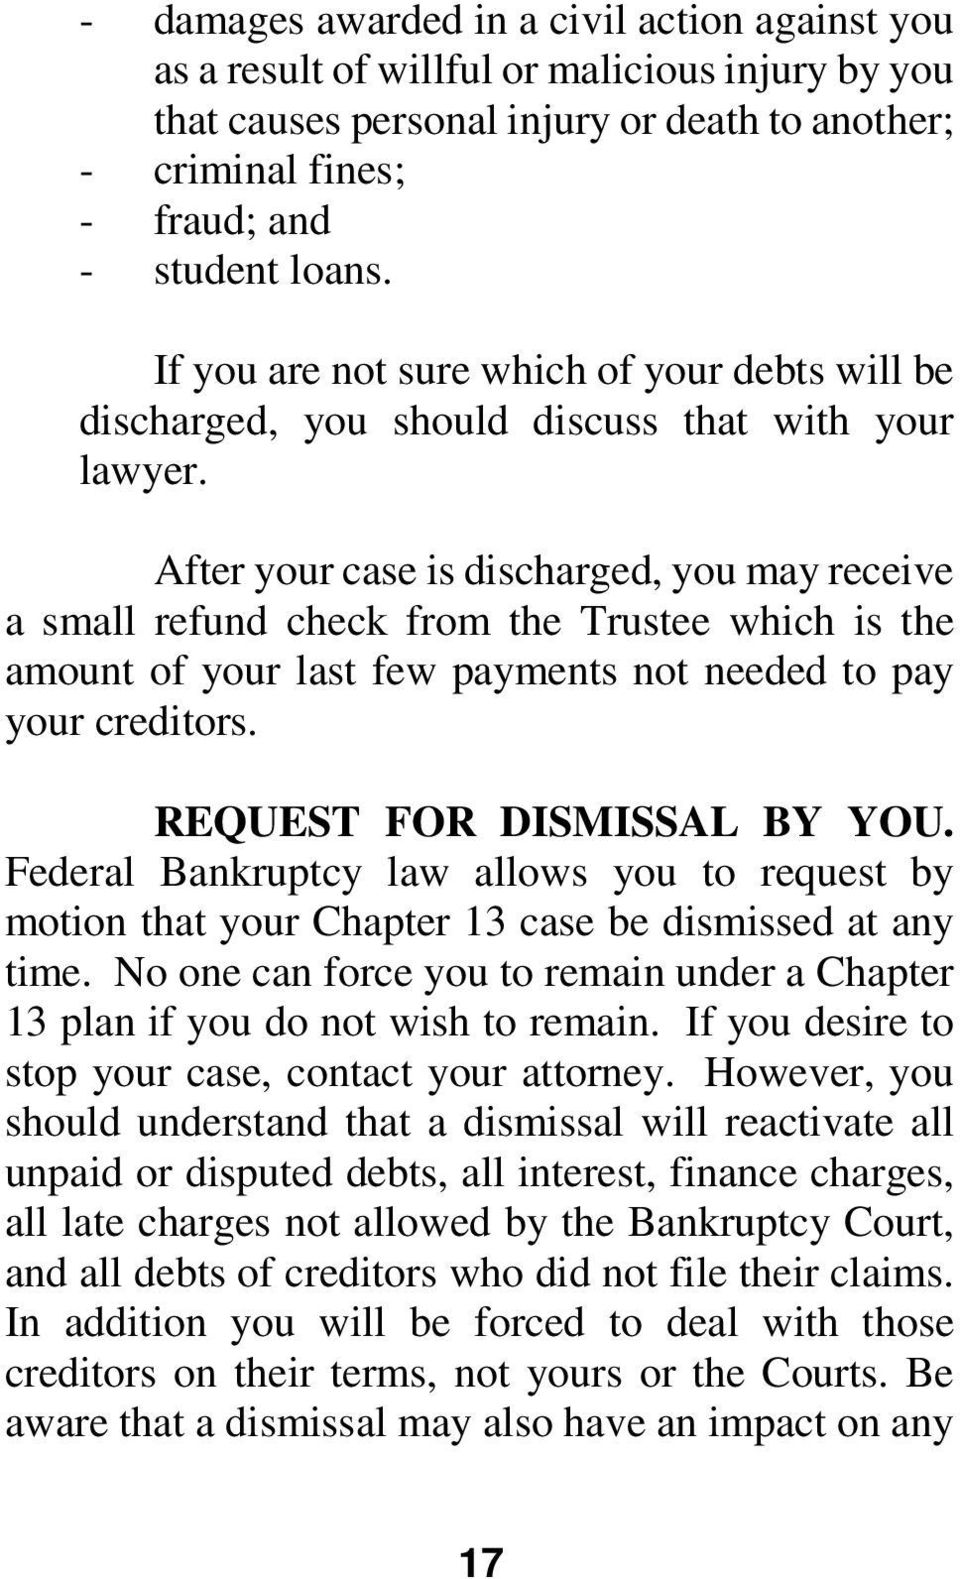 After your case is discharged, you may receive a small refund check from the Trustee which is the amount of your last few payments not needed to pay your creditors. REQUEST FOR DISMISSAL BY YOU.